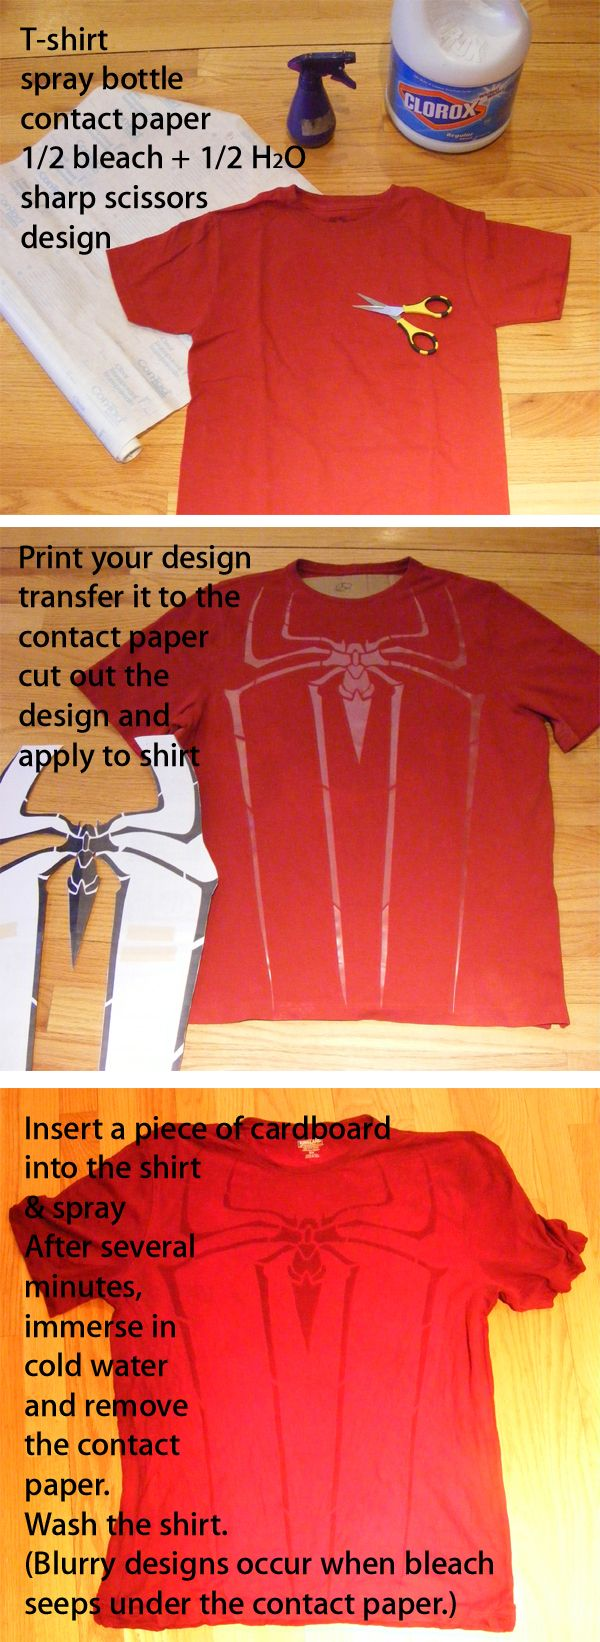 DIY bleach Spiderman shirt. Amazing!   Too crafty   Pinterest ... on homemade ghost shirts, homemade ironman shirts, homemade crayola shirts, homemade halloween shirts, homemade soccer shirts, homemade pacman shirts, homemade jurassic park shirts, homemade peter pan shirts, homemade wwe shirts, homemade cat shirts, homemade birthday shirts, homemade hannah montana shirts, homemade sports shirts, homemade football shirts, homemade pi shirts, homemade thomas shirts, homemade tinkerbell shirts, homemade superhero shirts, homemade dinosaur shirts, homemade superman costume for a girl,